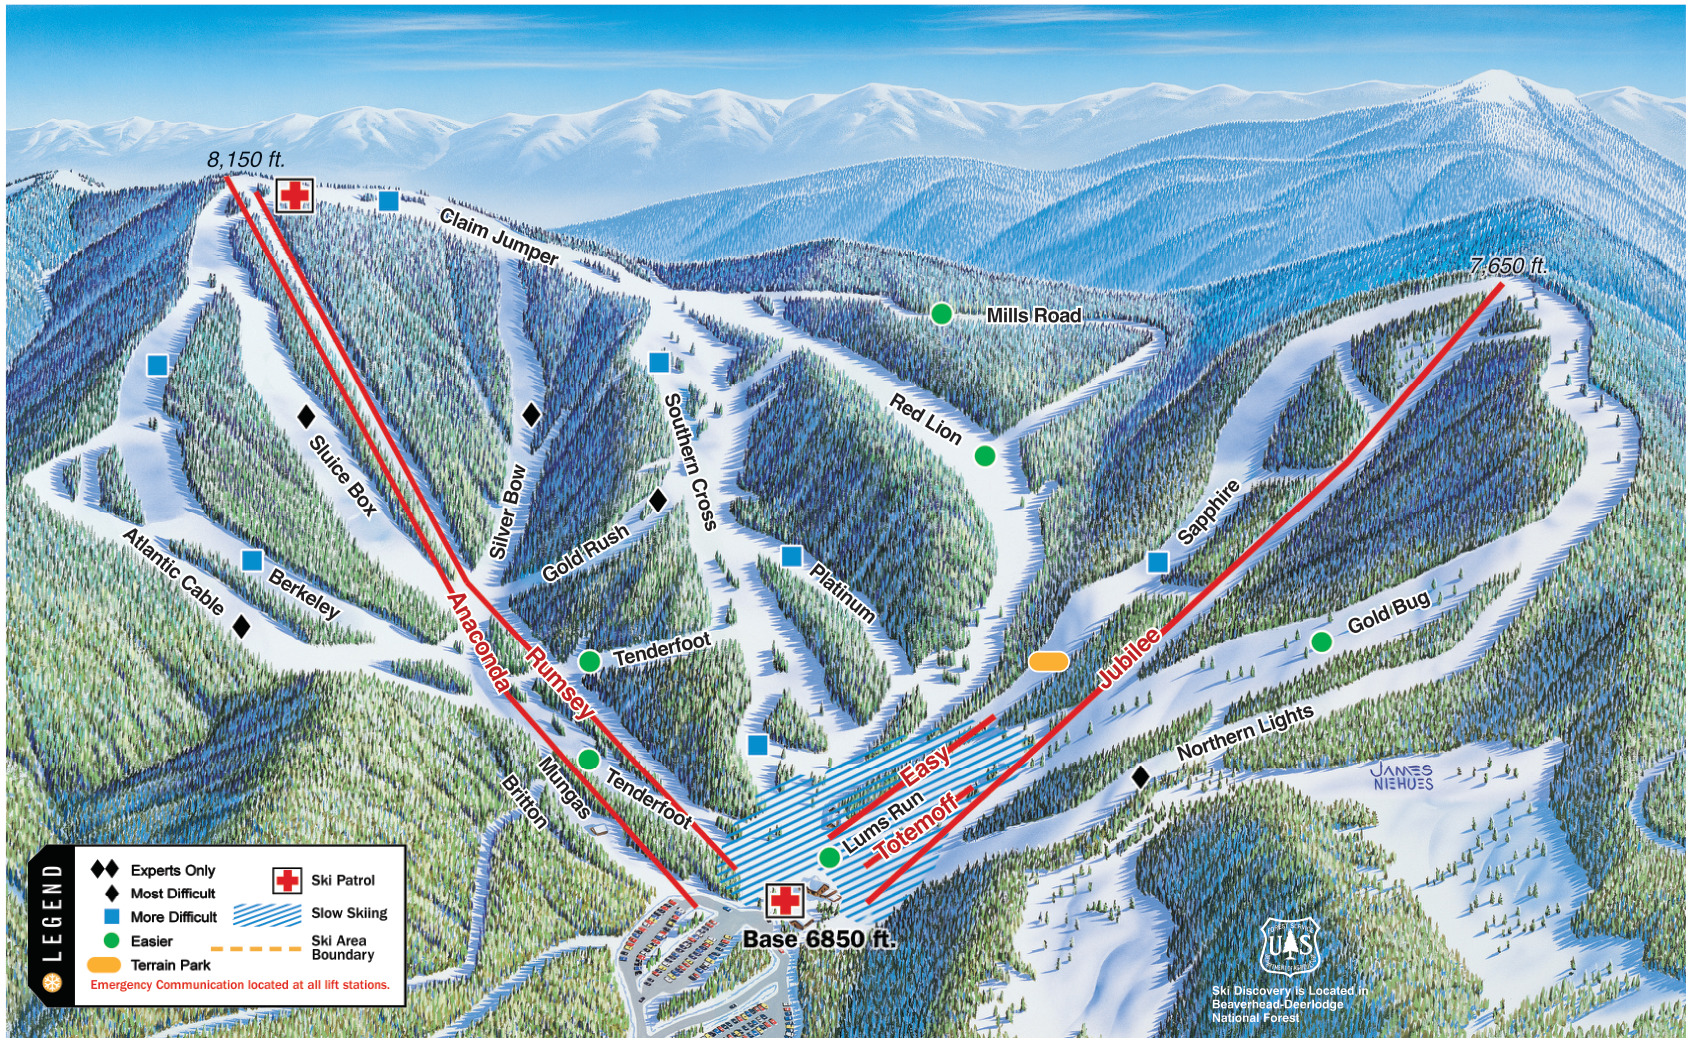 google maps map api with 366 on 315 moreover Downhill as well Travel Bormio Map in addition 163 furthermore 366.